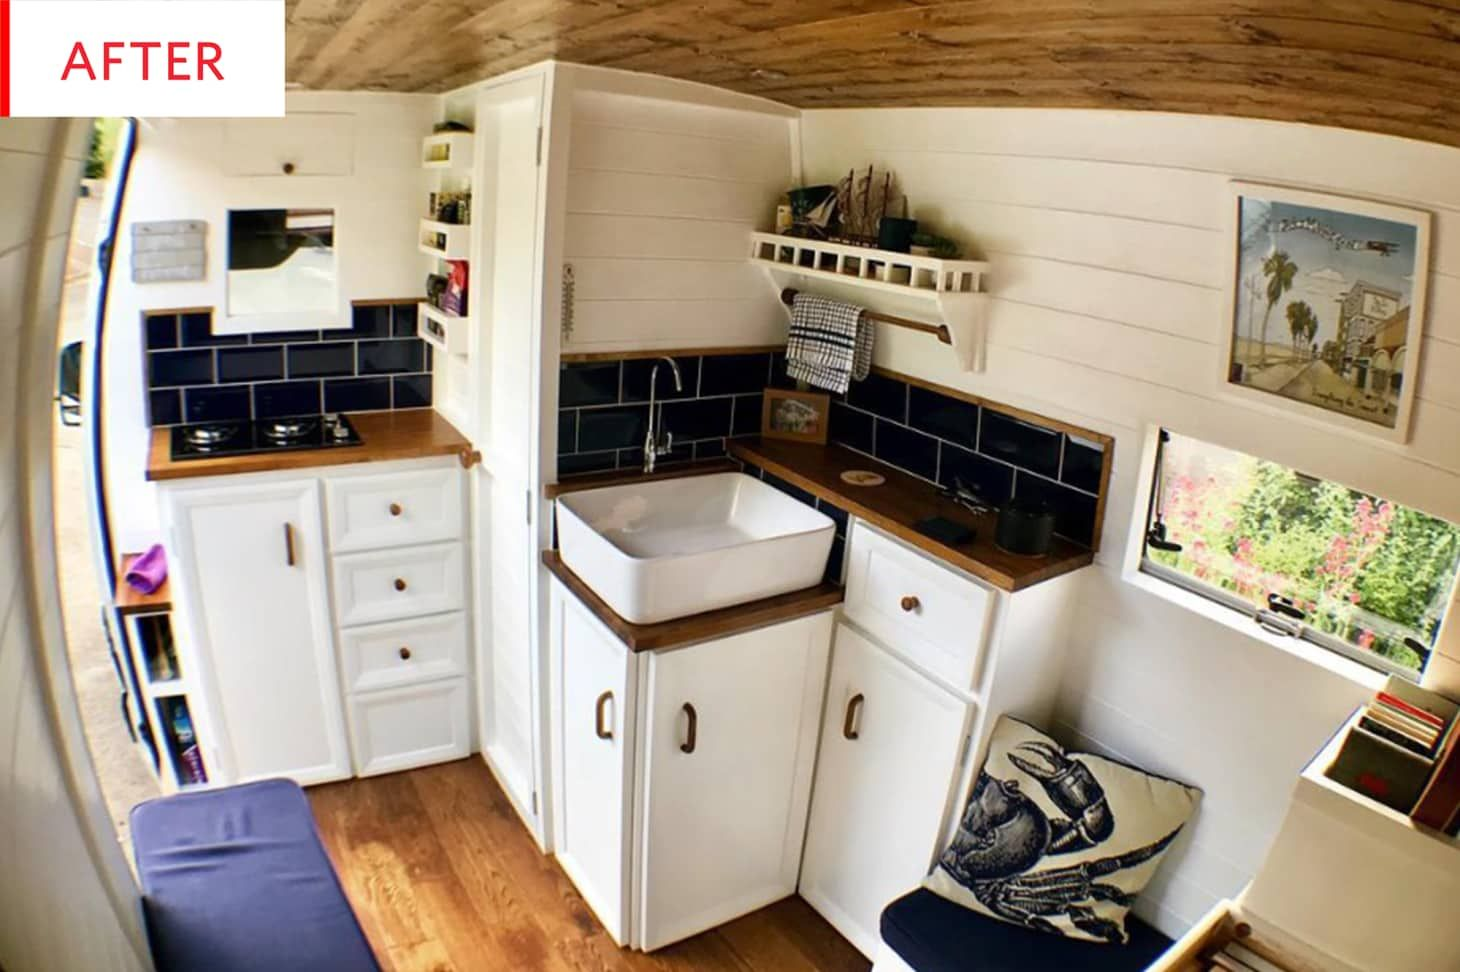 Photo of Before and After: This Converted Sprinter Van Even Has an Actual Bathroom